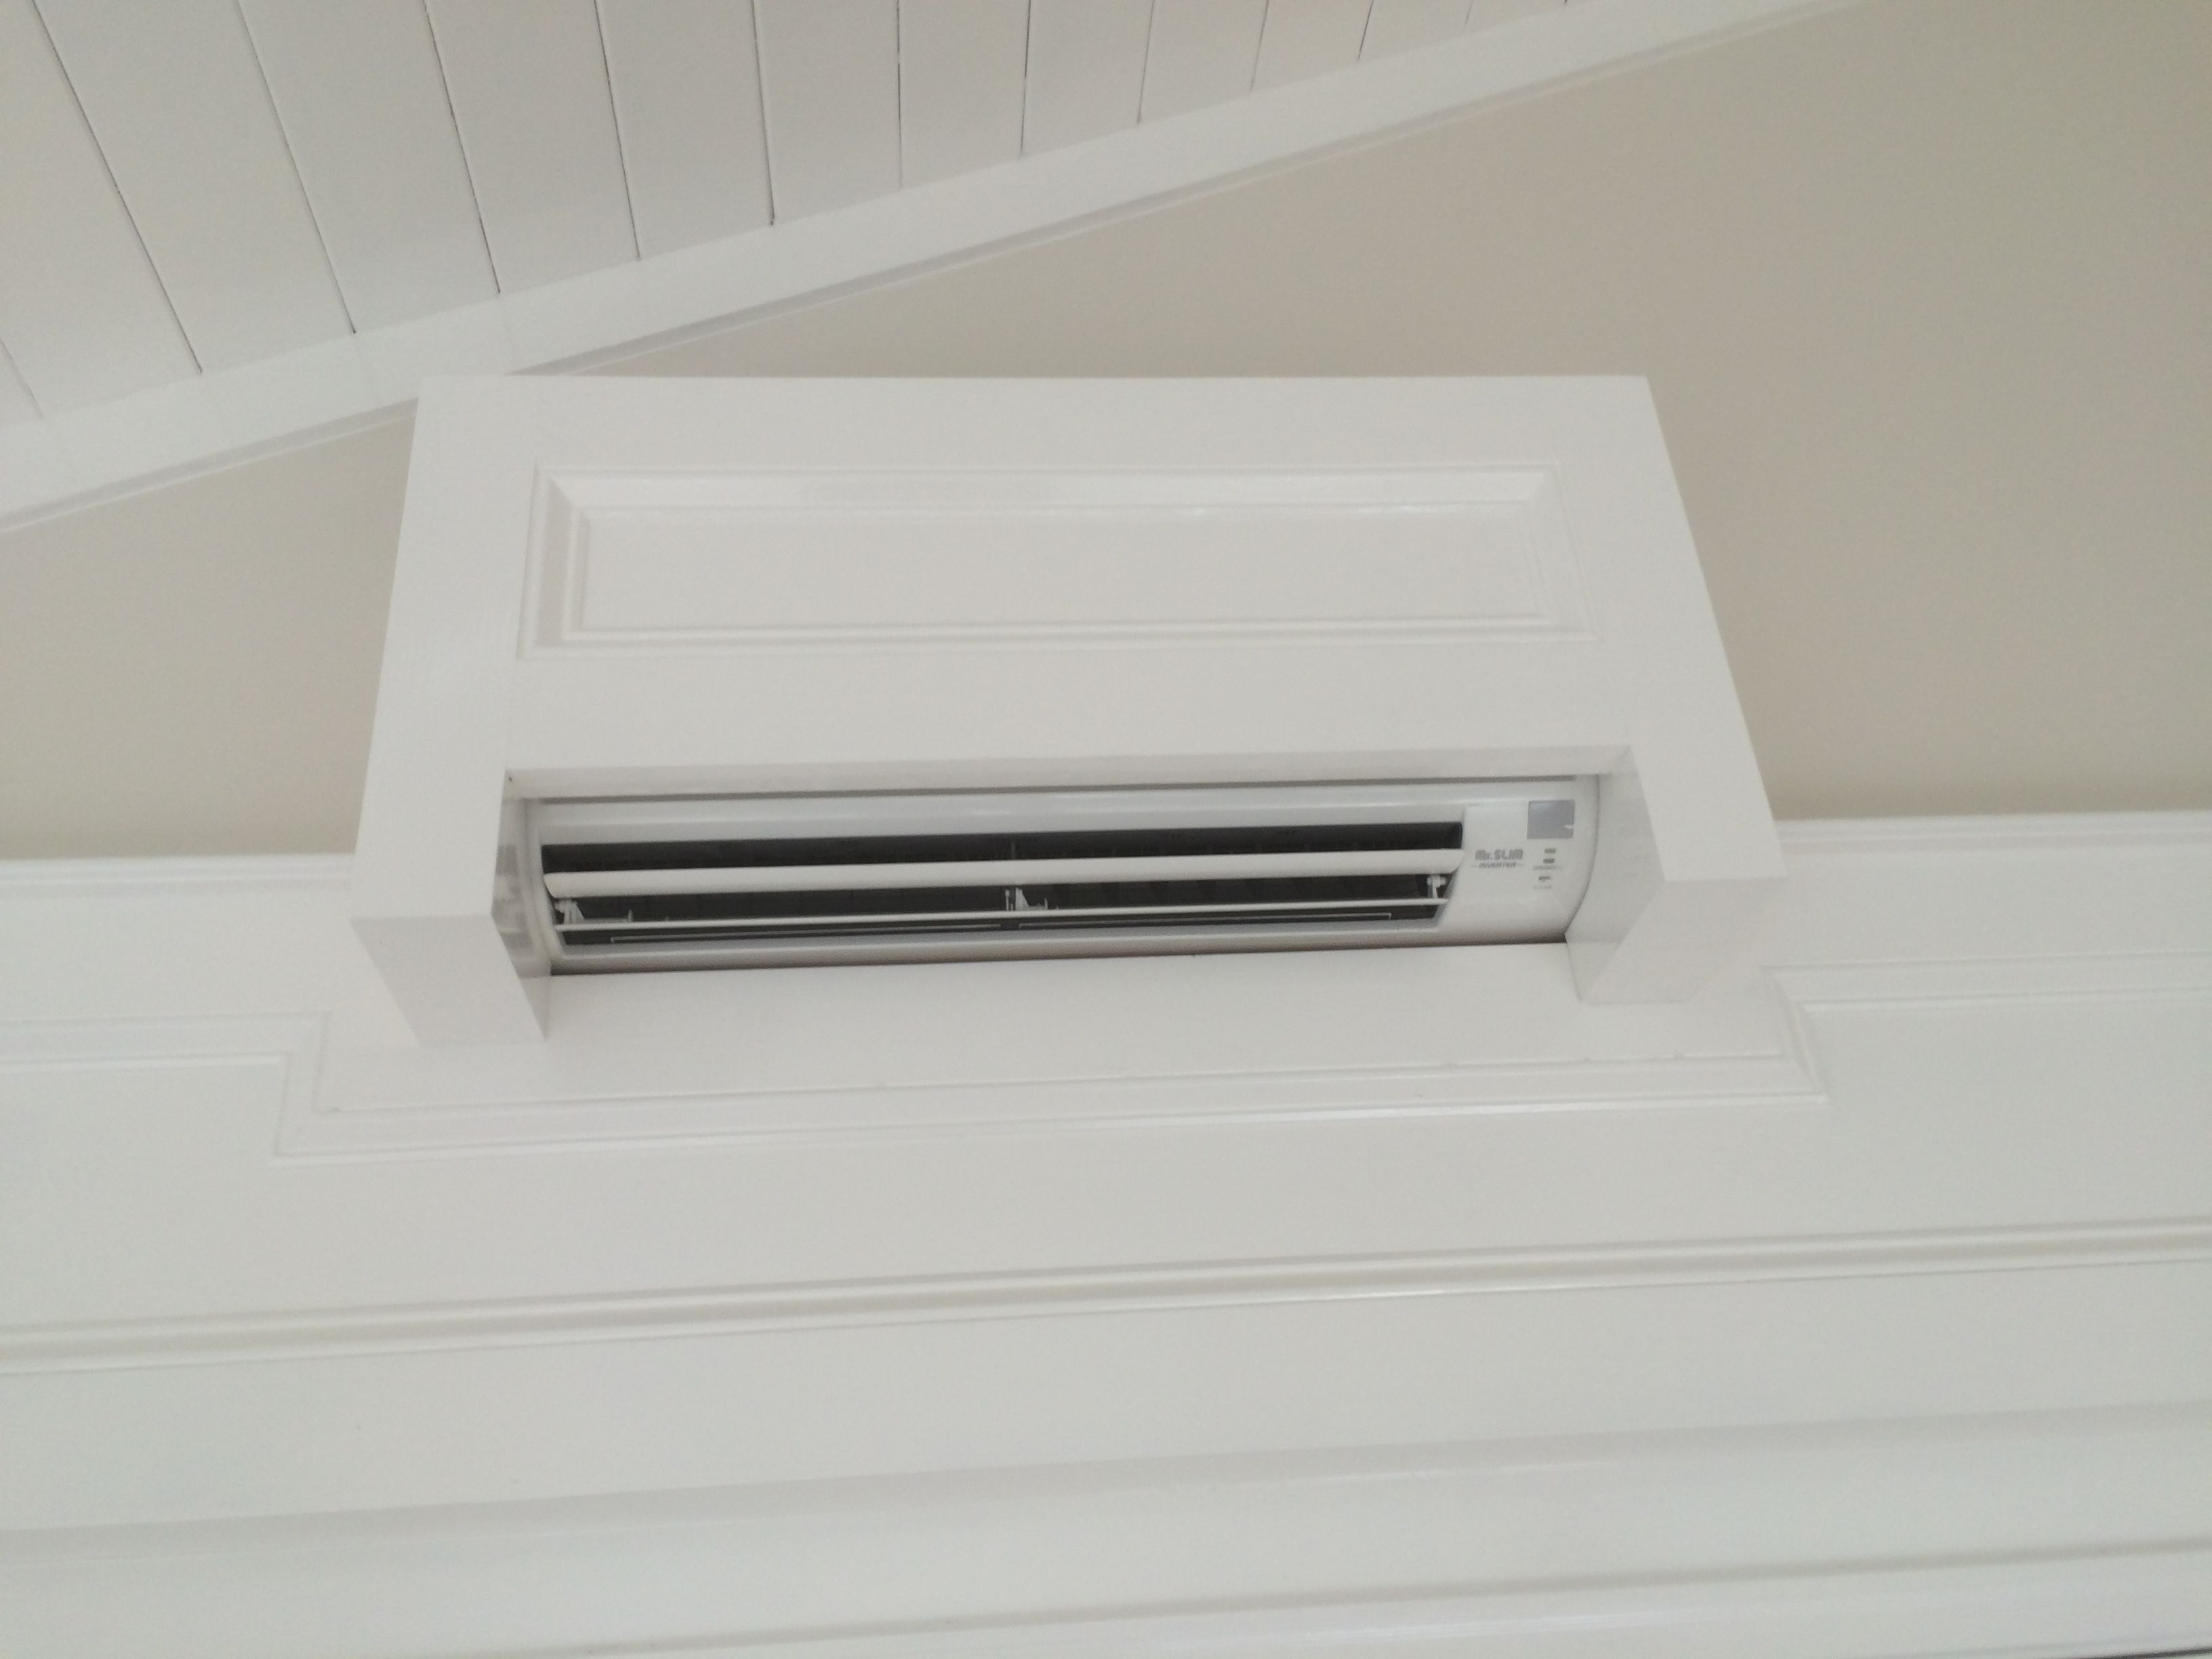 Garage Attic Air Conditioner Concealed Mini Split Pci Home Ideas Air Conditioner Cover